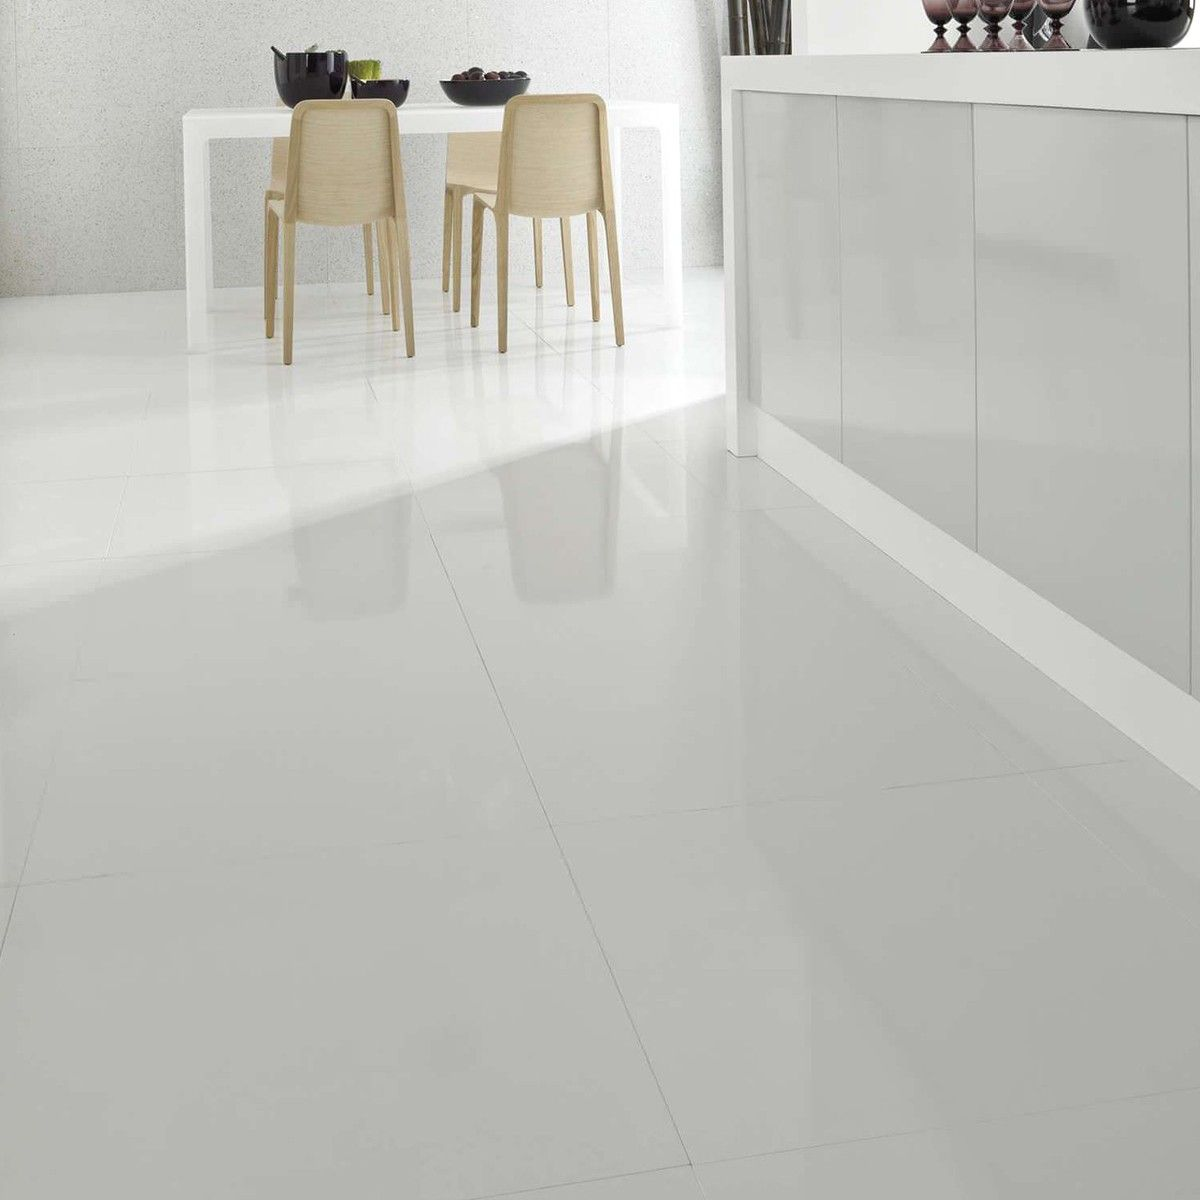 White Tile In Kitchen Floor: 60x60cm Stark White Porcelain - Crown Tiles